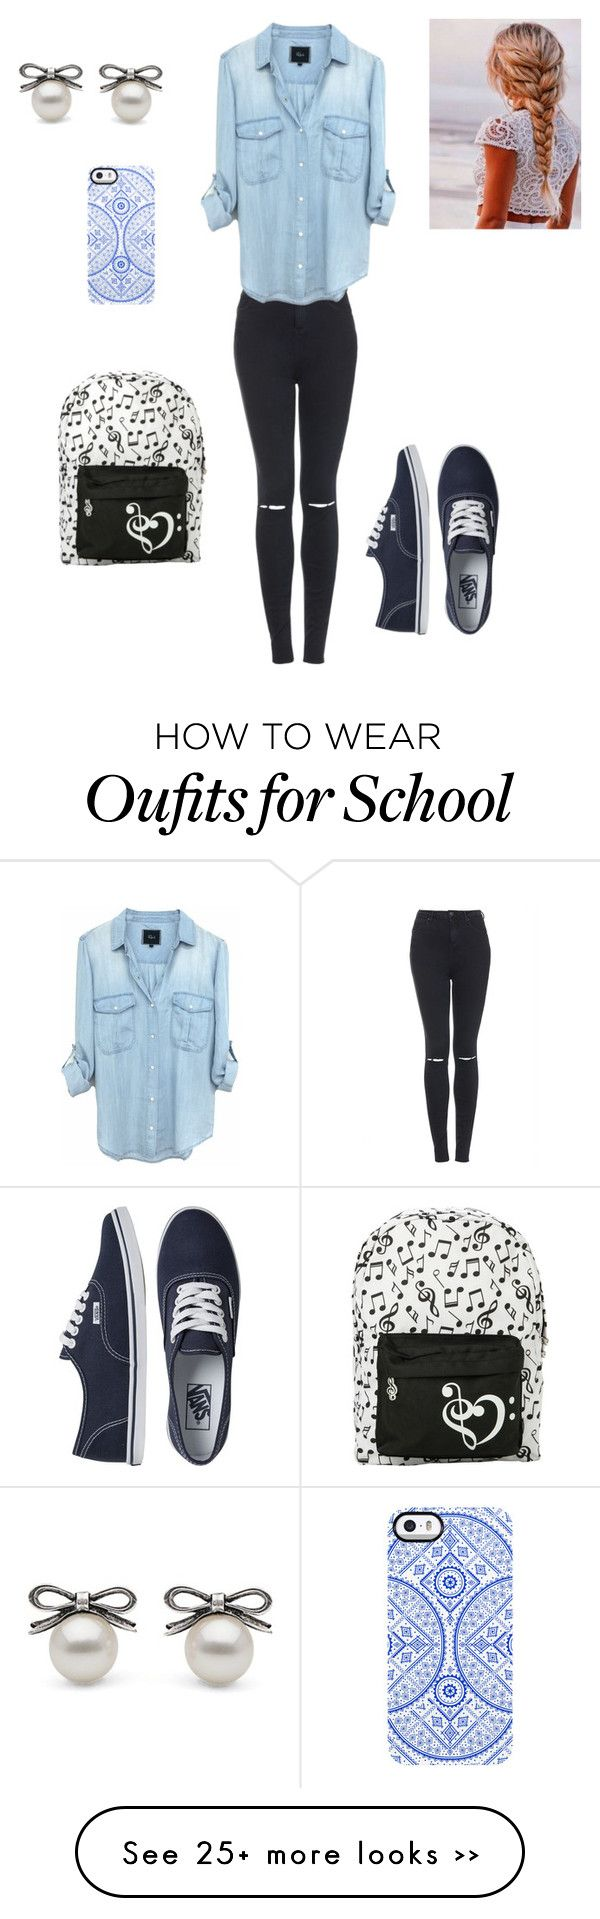 """""""School"""" by macsuzbax on Polyvore"""